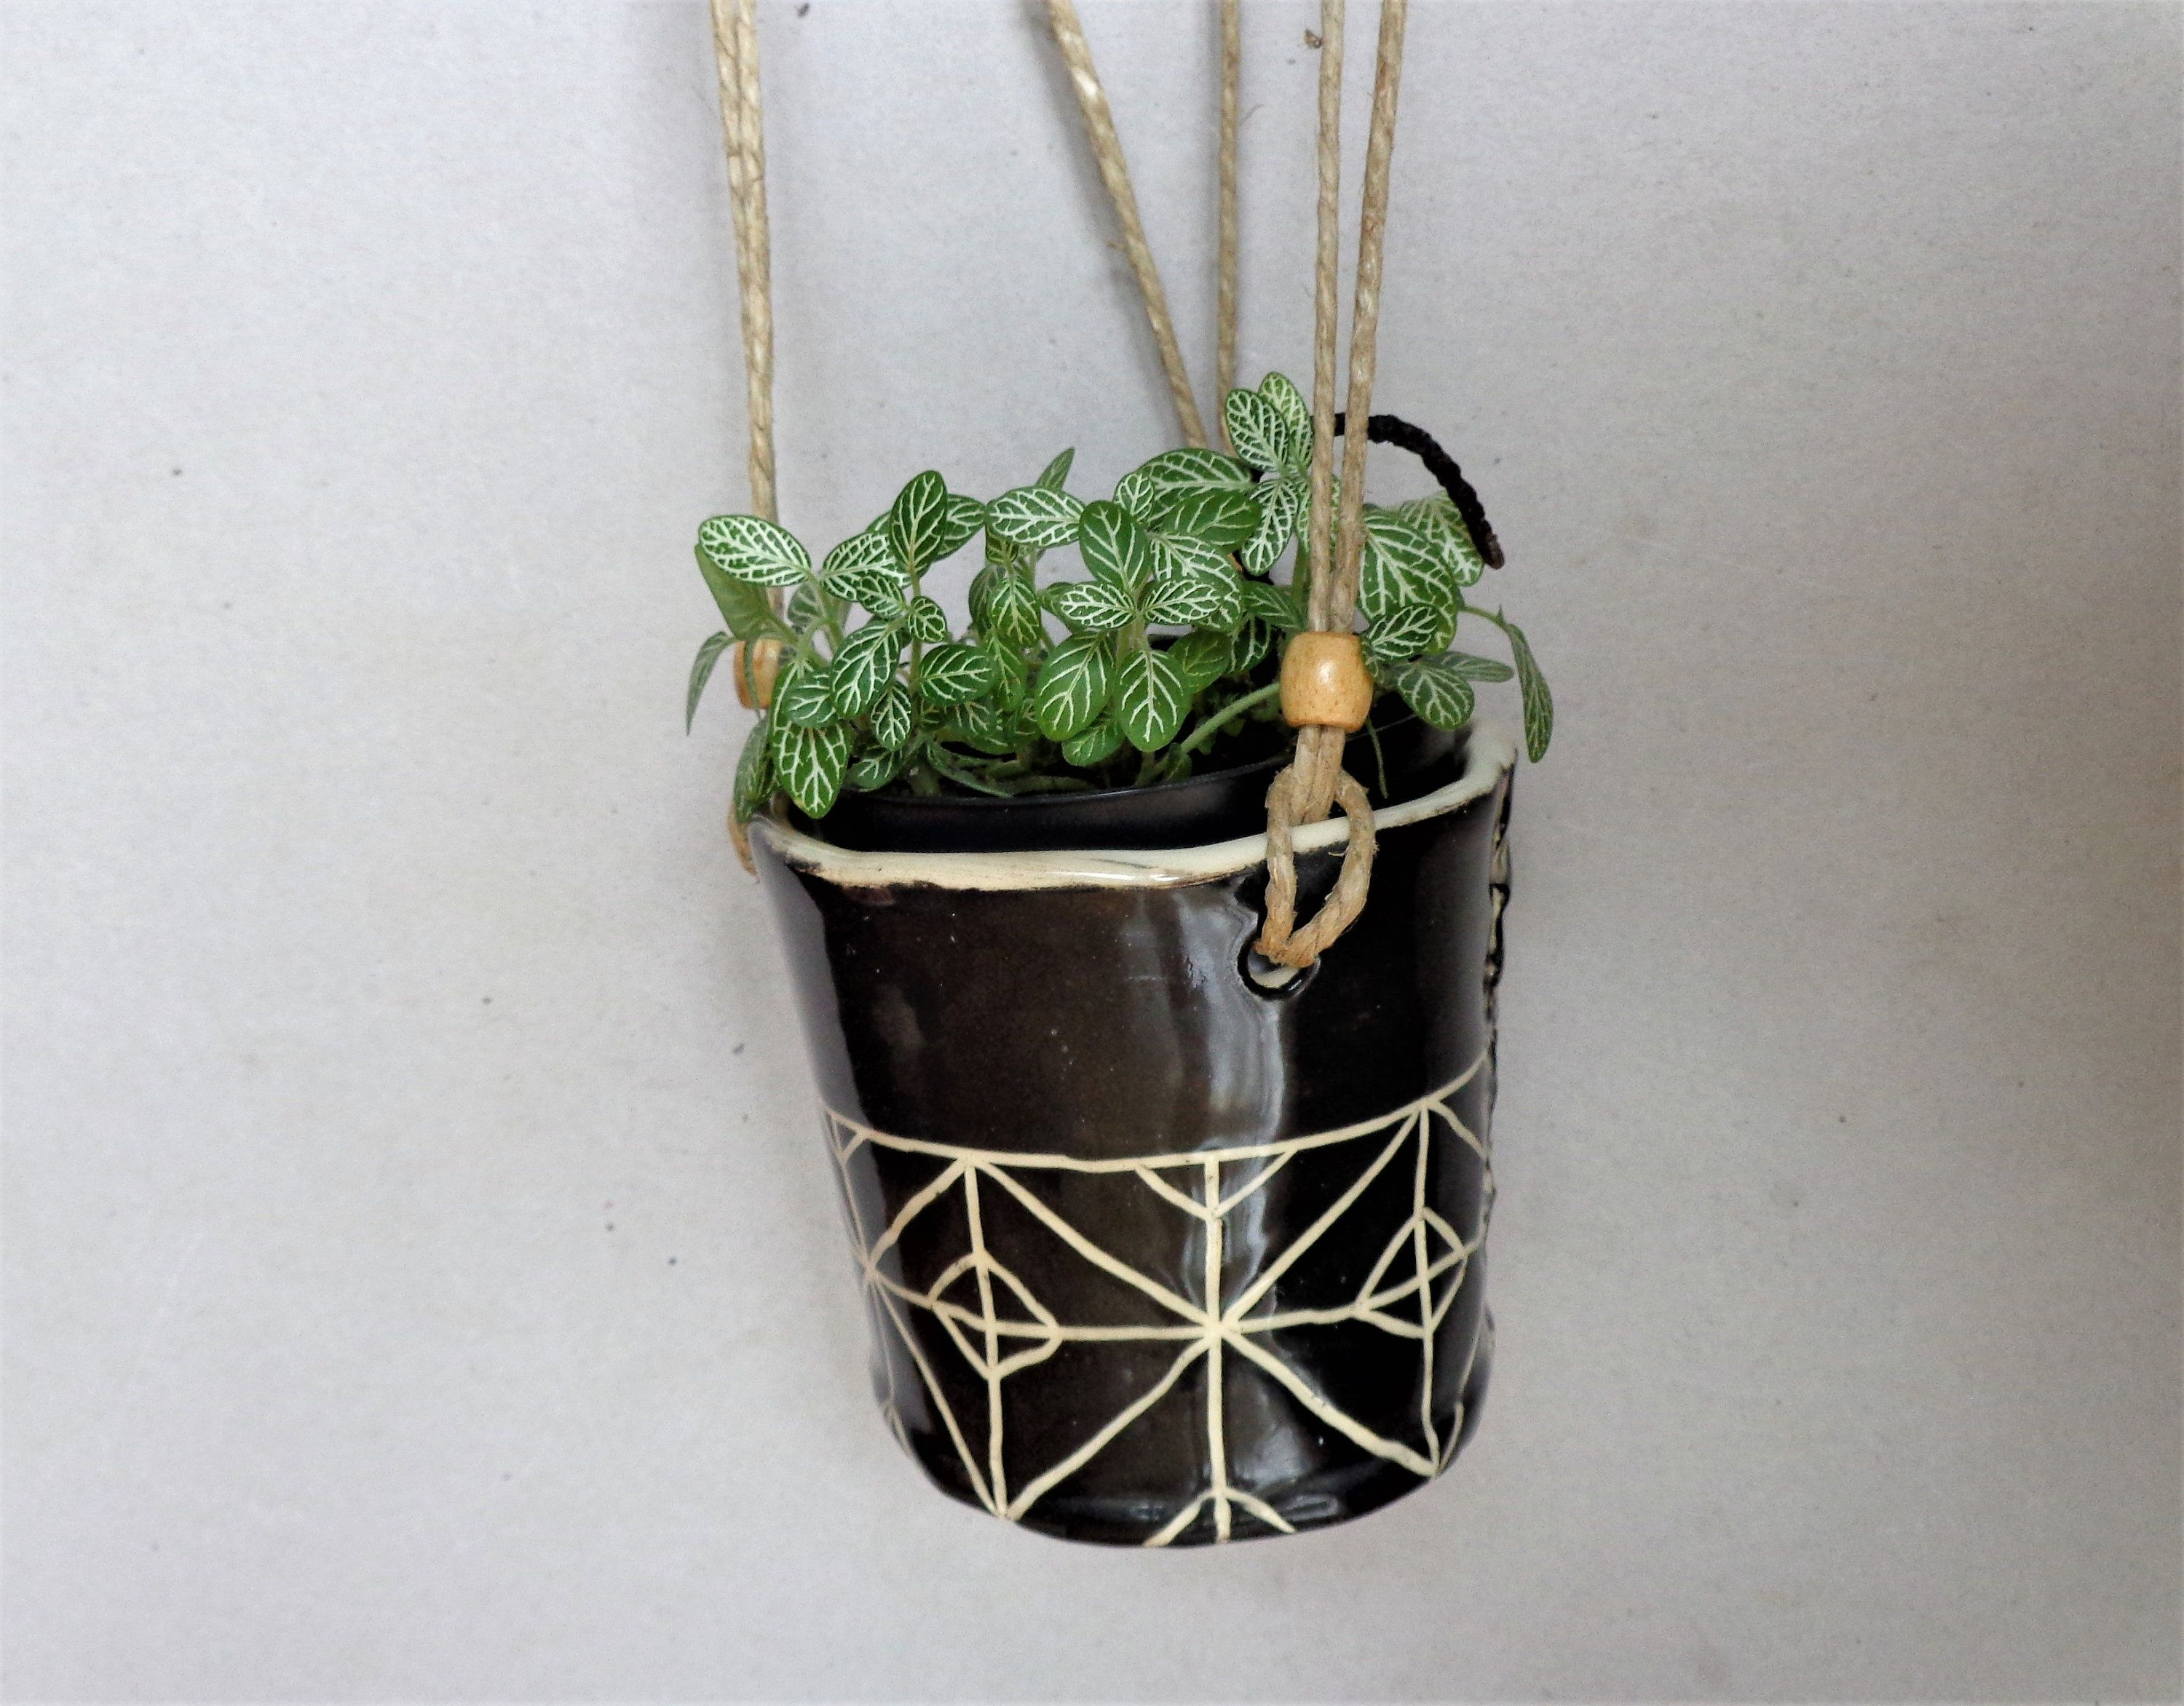 Small Black Sgrafitto Textured Hanging Planter Rustic Round Indoor Or Outdoor Hanging Planter Pot Hom Geometric Diamond Pattern Hanging Planters Planter Pots